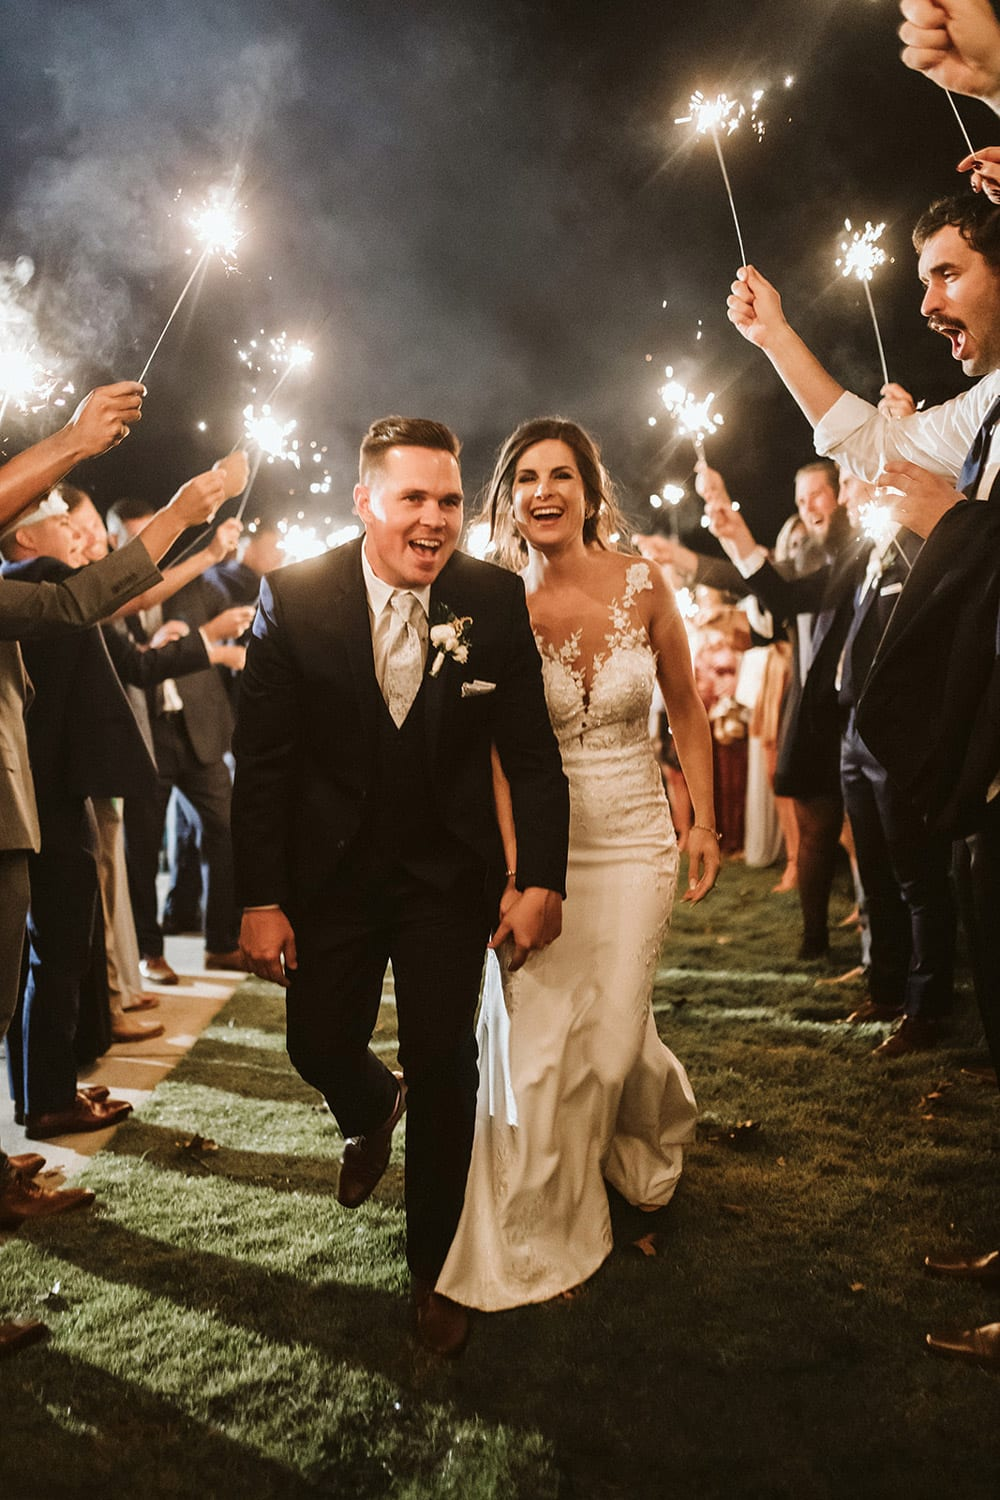 Groom and bride holding hands during send-off